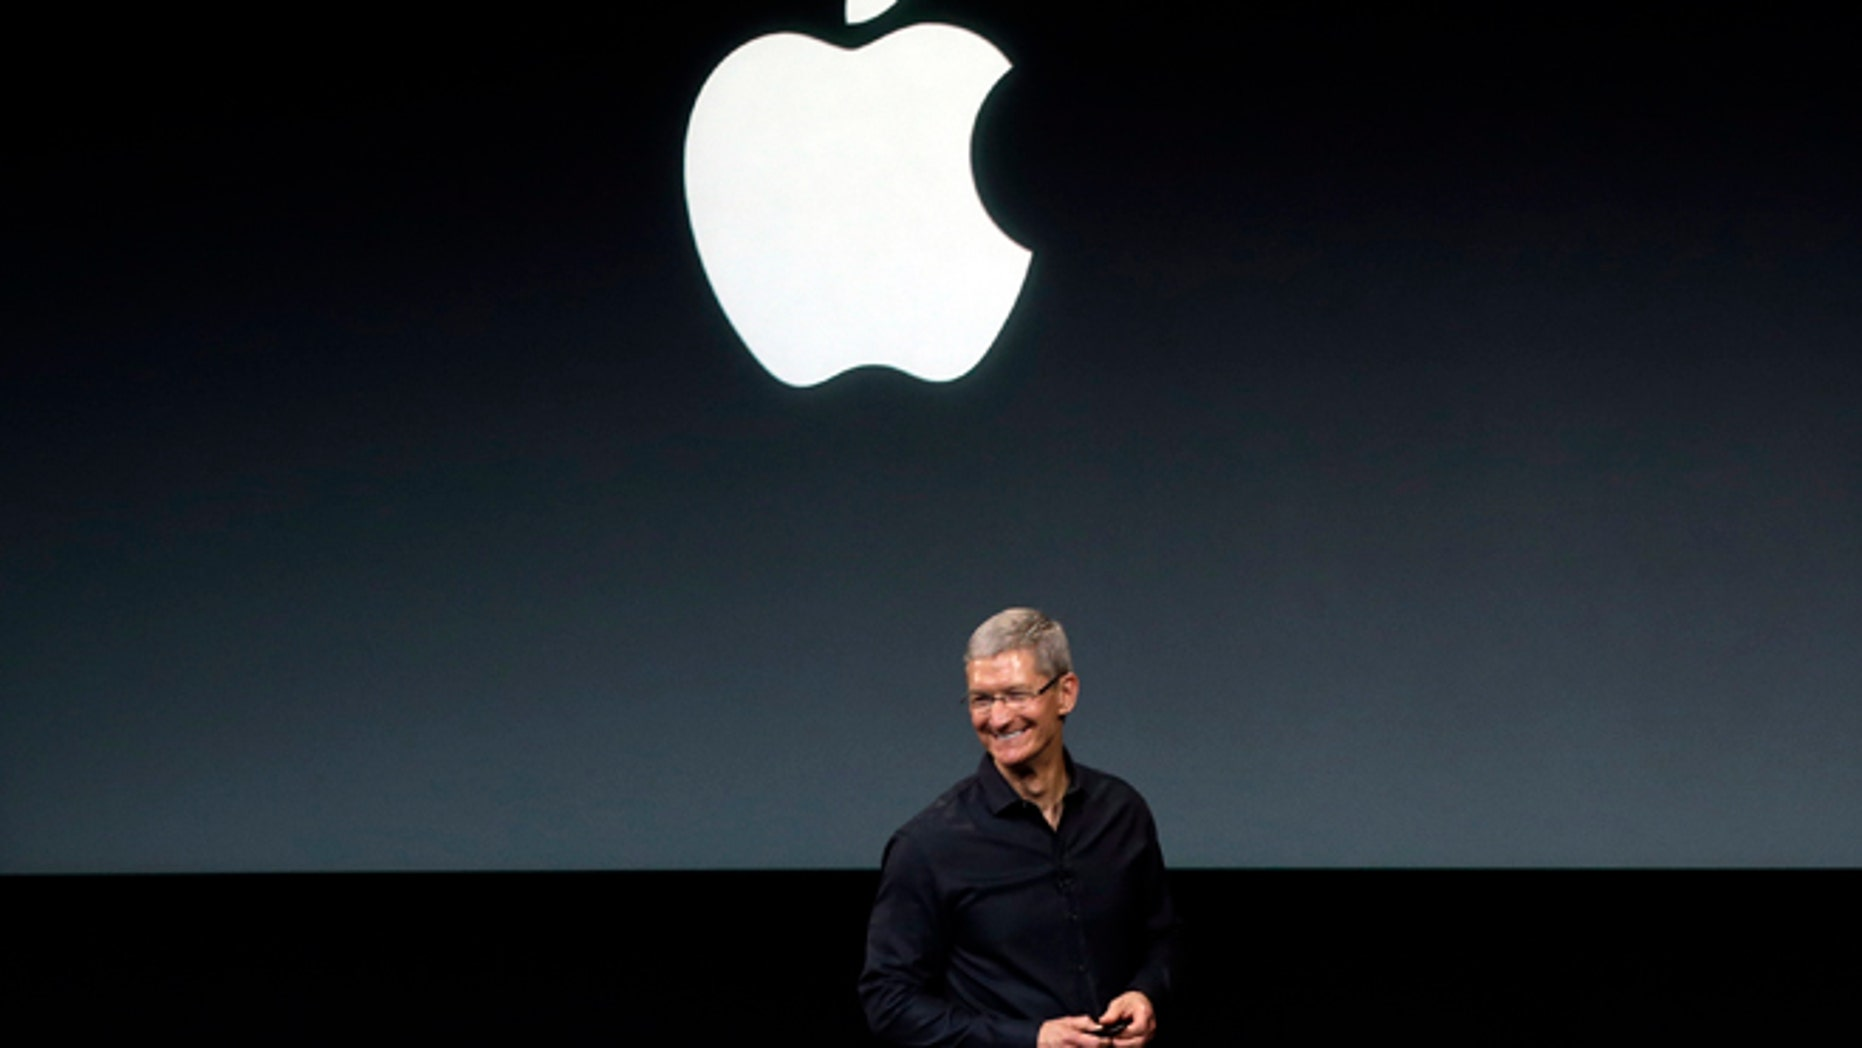 Apple CEO Tim Cook speaks on stage before a new product introduction in Cupertino, Calif., in Sept. 2013.